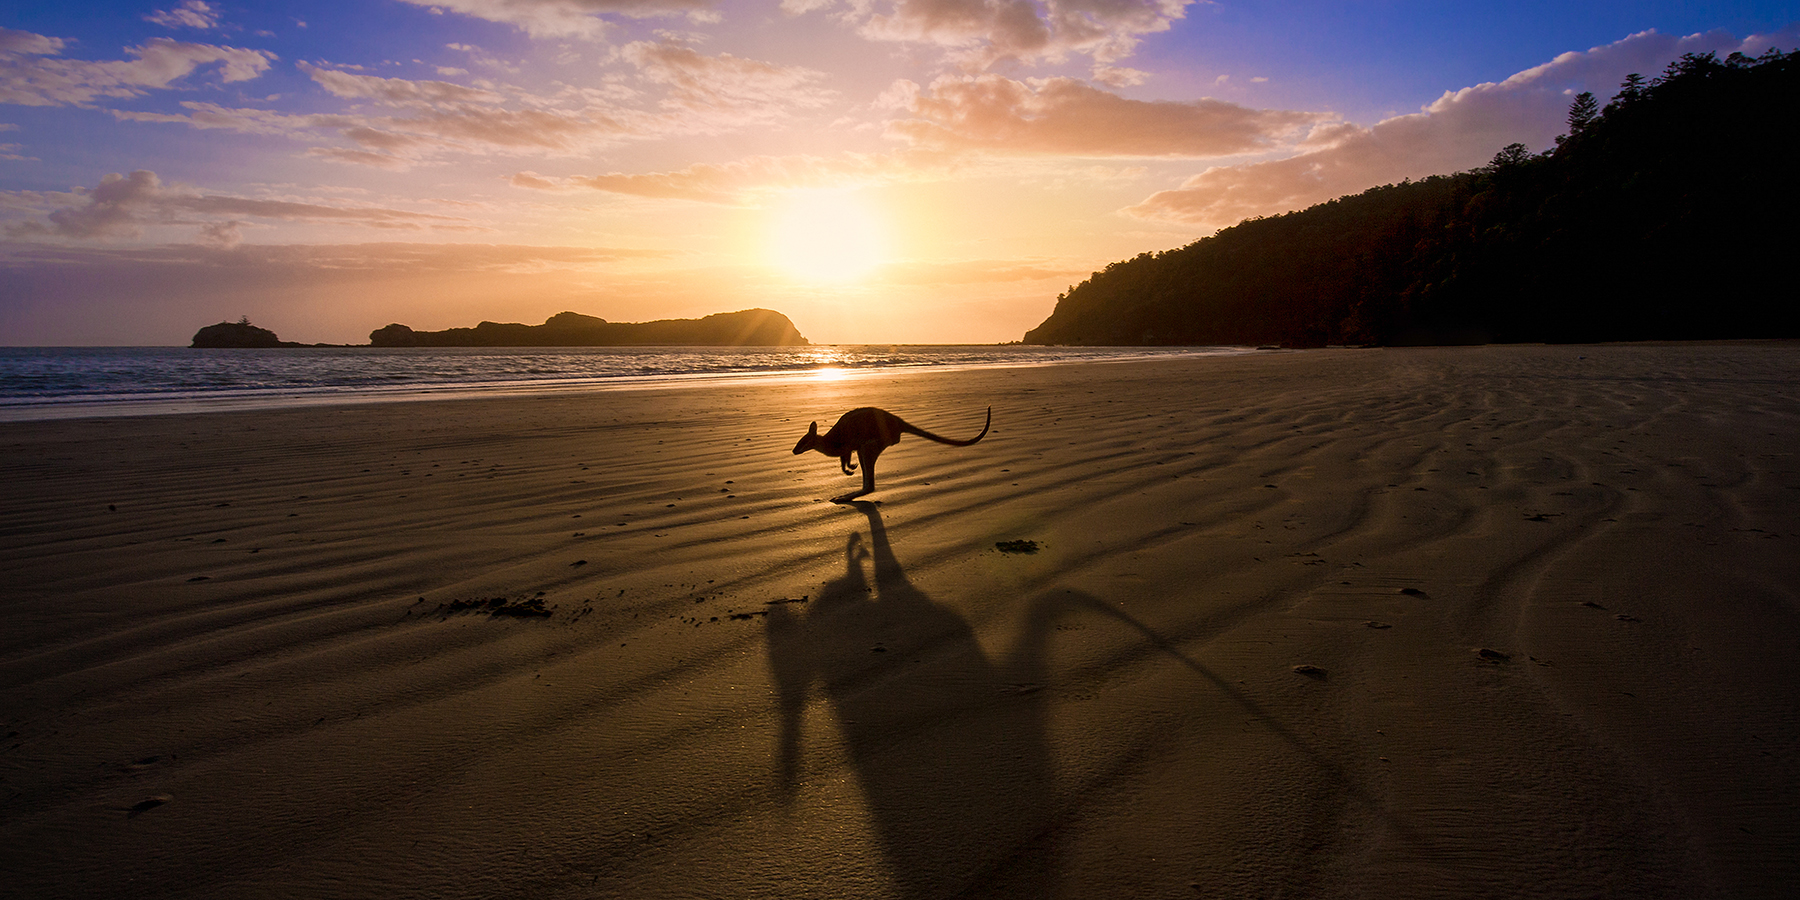 Sunset landscape image of kangaroo on the beach by Greg Sullavan